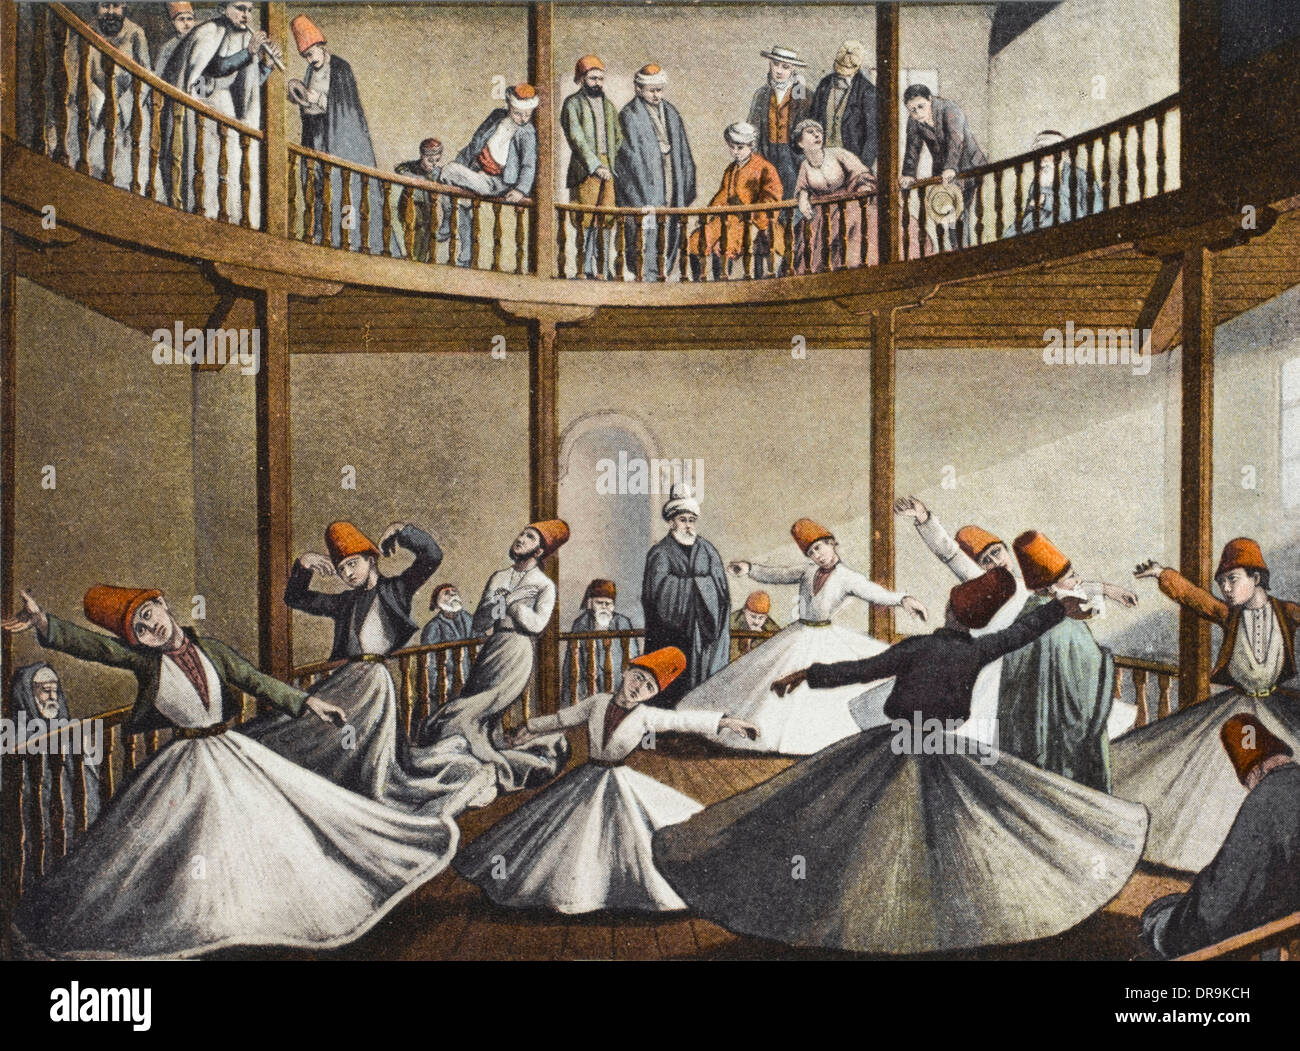 Mevlevi Dervishes - The Sema (Constantinople) - Stock Image